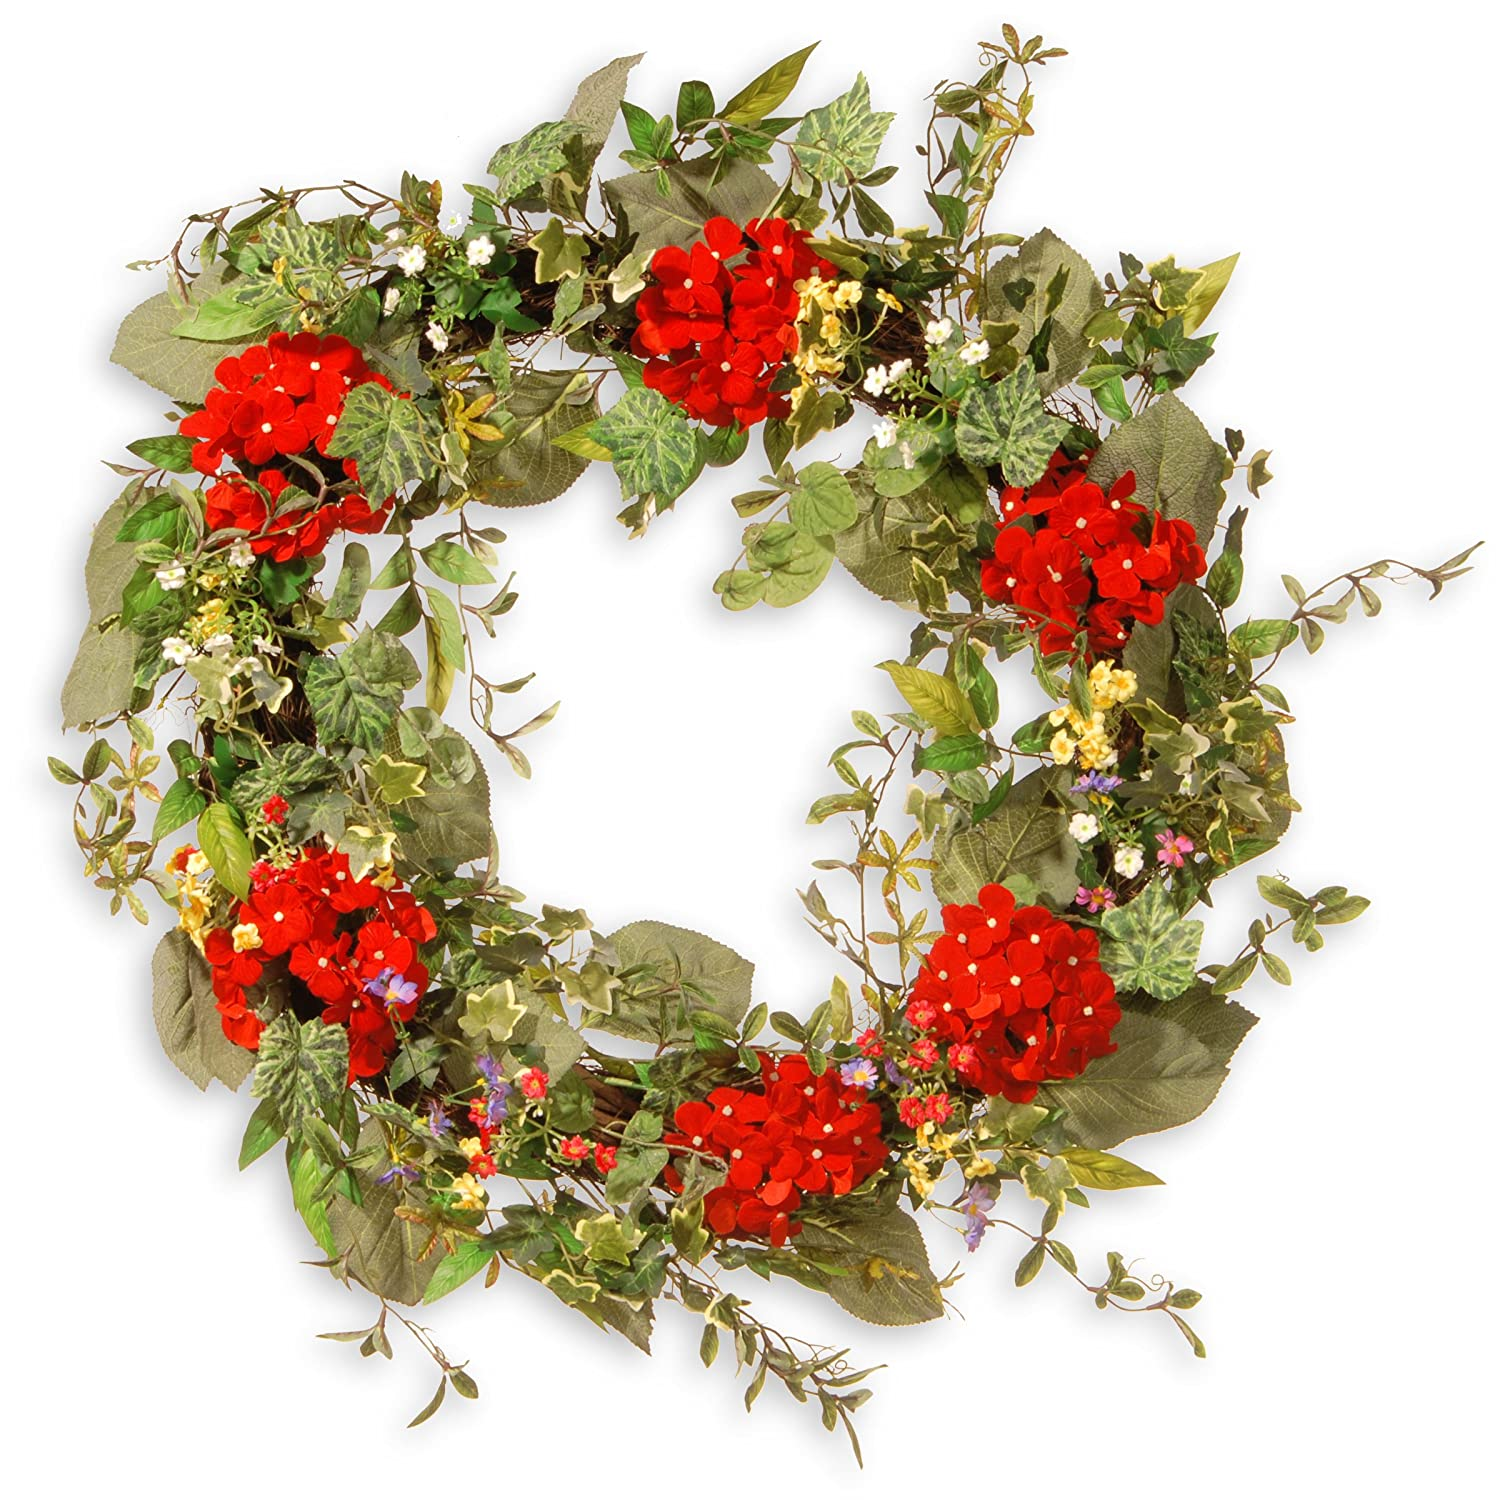 Nationalツリー会社32で。Mixed Flower Spring Wreath 25-36 inches グリーン RAS-AW030225A B01L2T1C2W グリーン